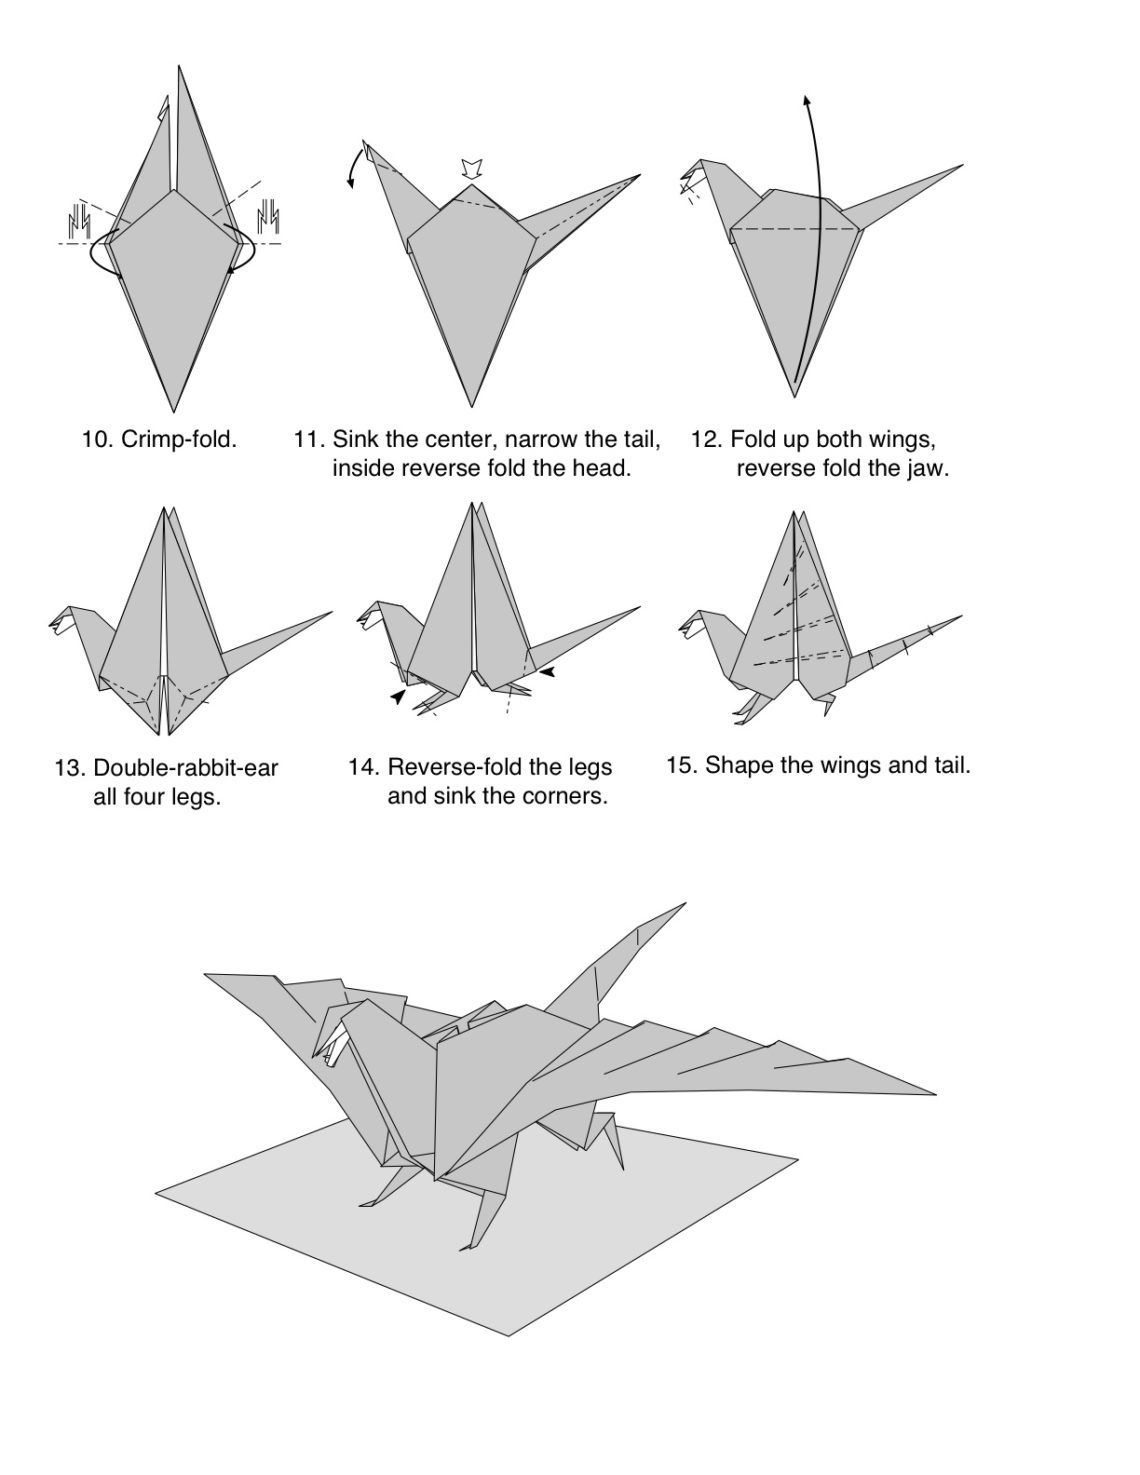 27 Wonderful Photo Of Origami For Beginners How To Make Origami For Beginners How To Make Picturesque Simple Origami Dragon Easy Origami Dragon Origami Horse